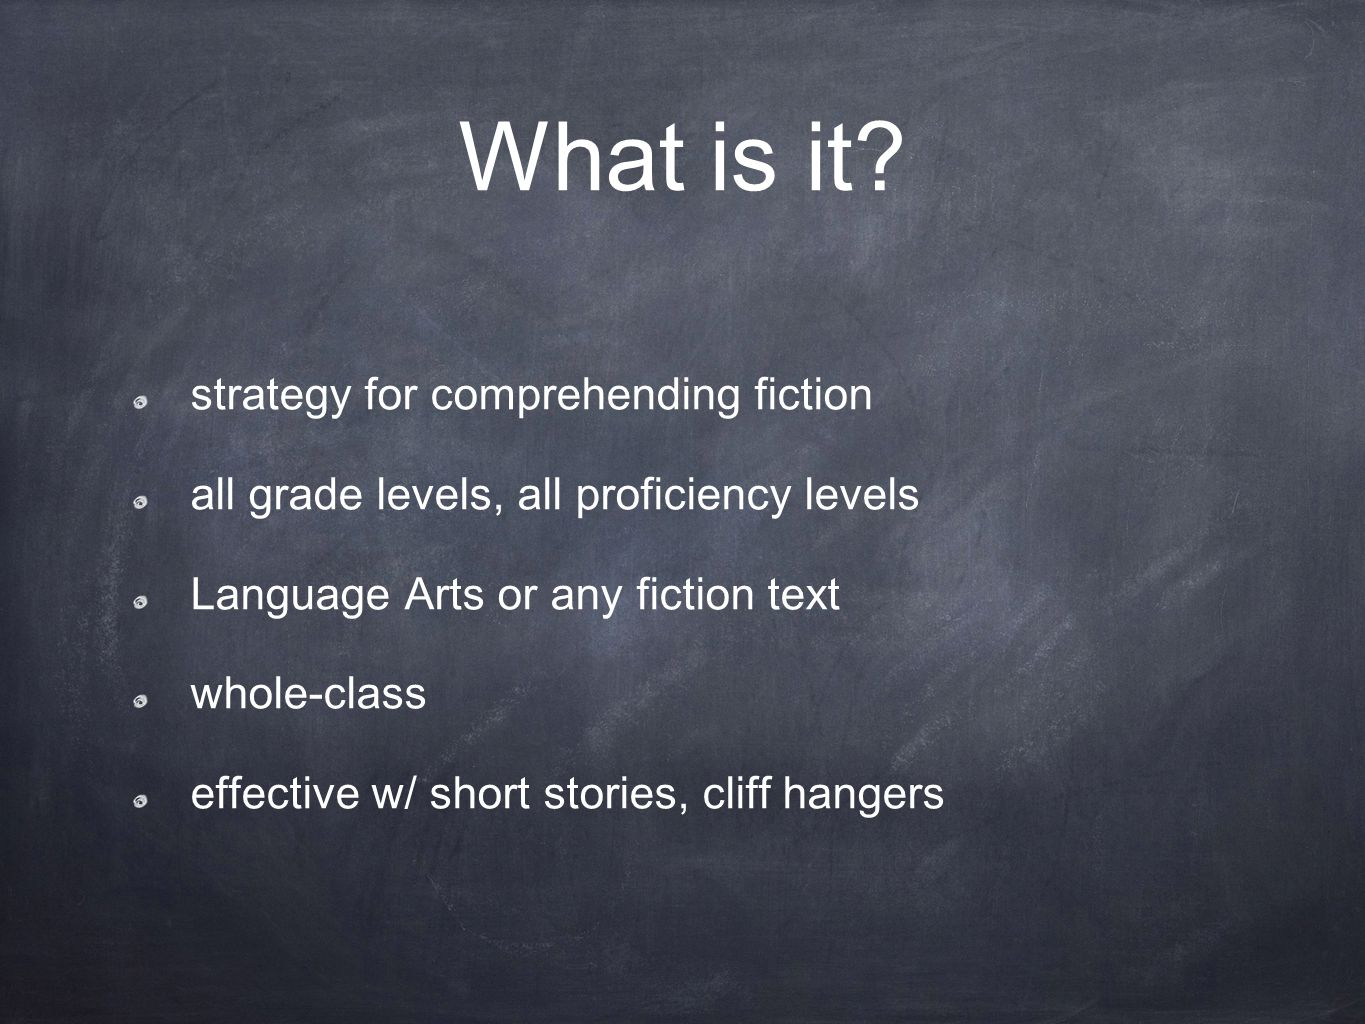 What is it? strategy for comprehending fiction all grade levels, all proficiency levels Language Arts or any fiction text whole-class effective w/ sho